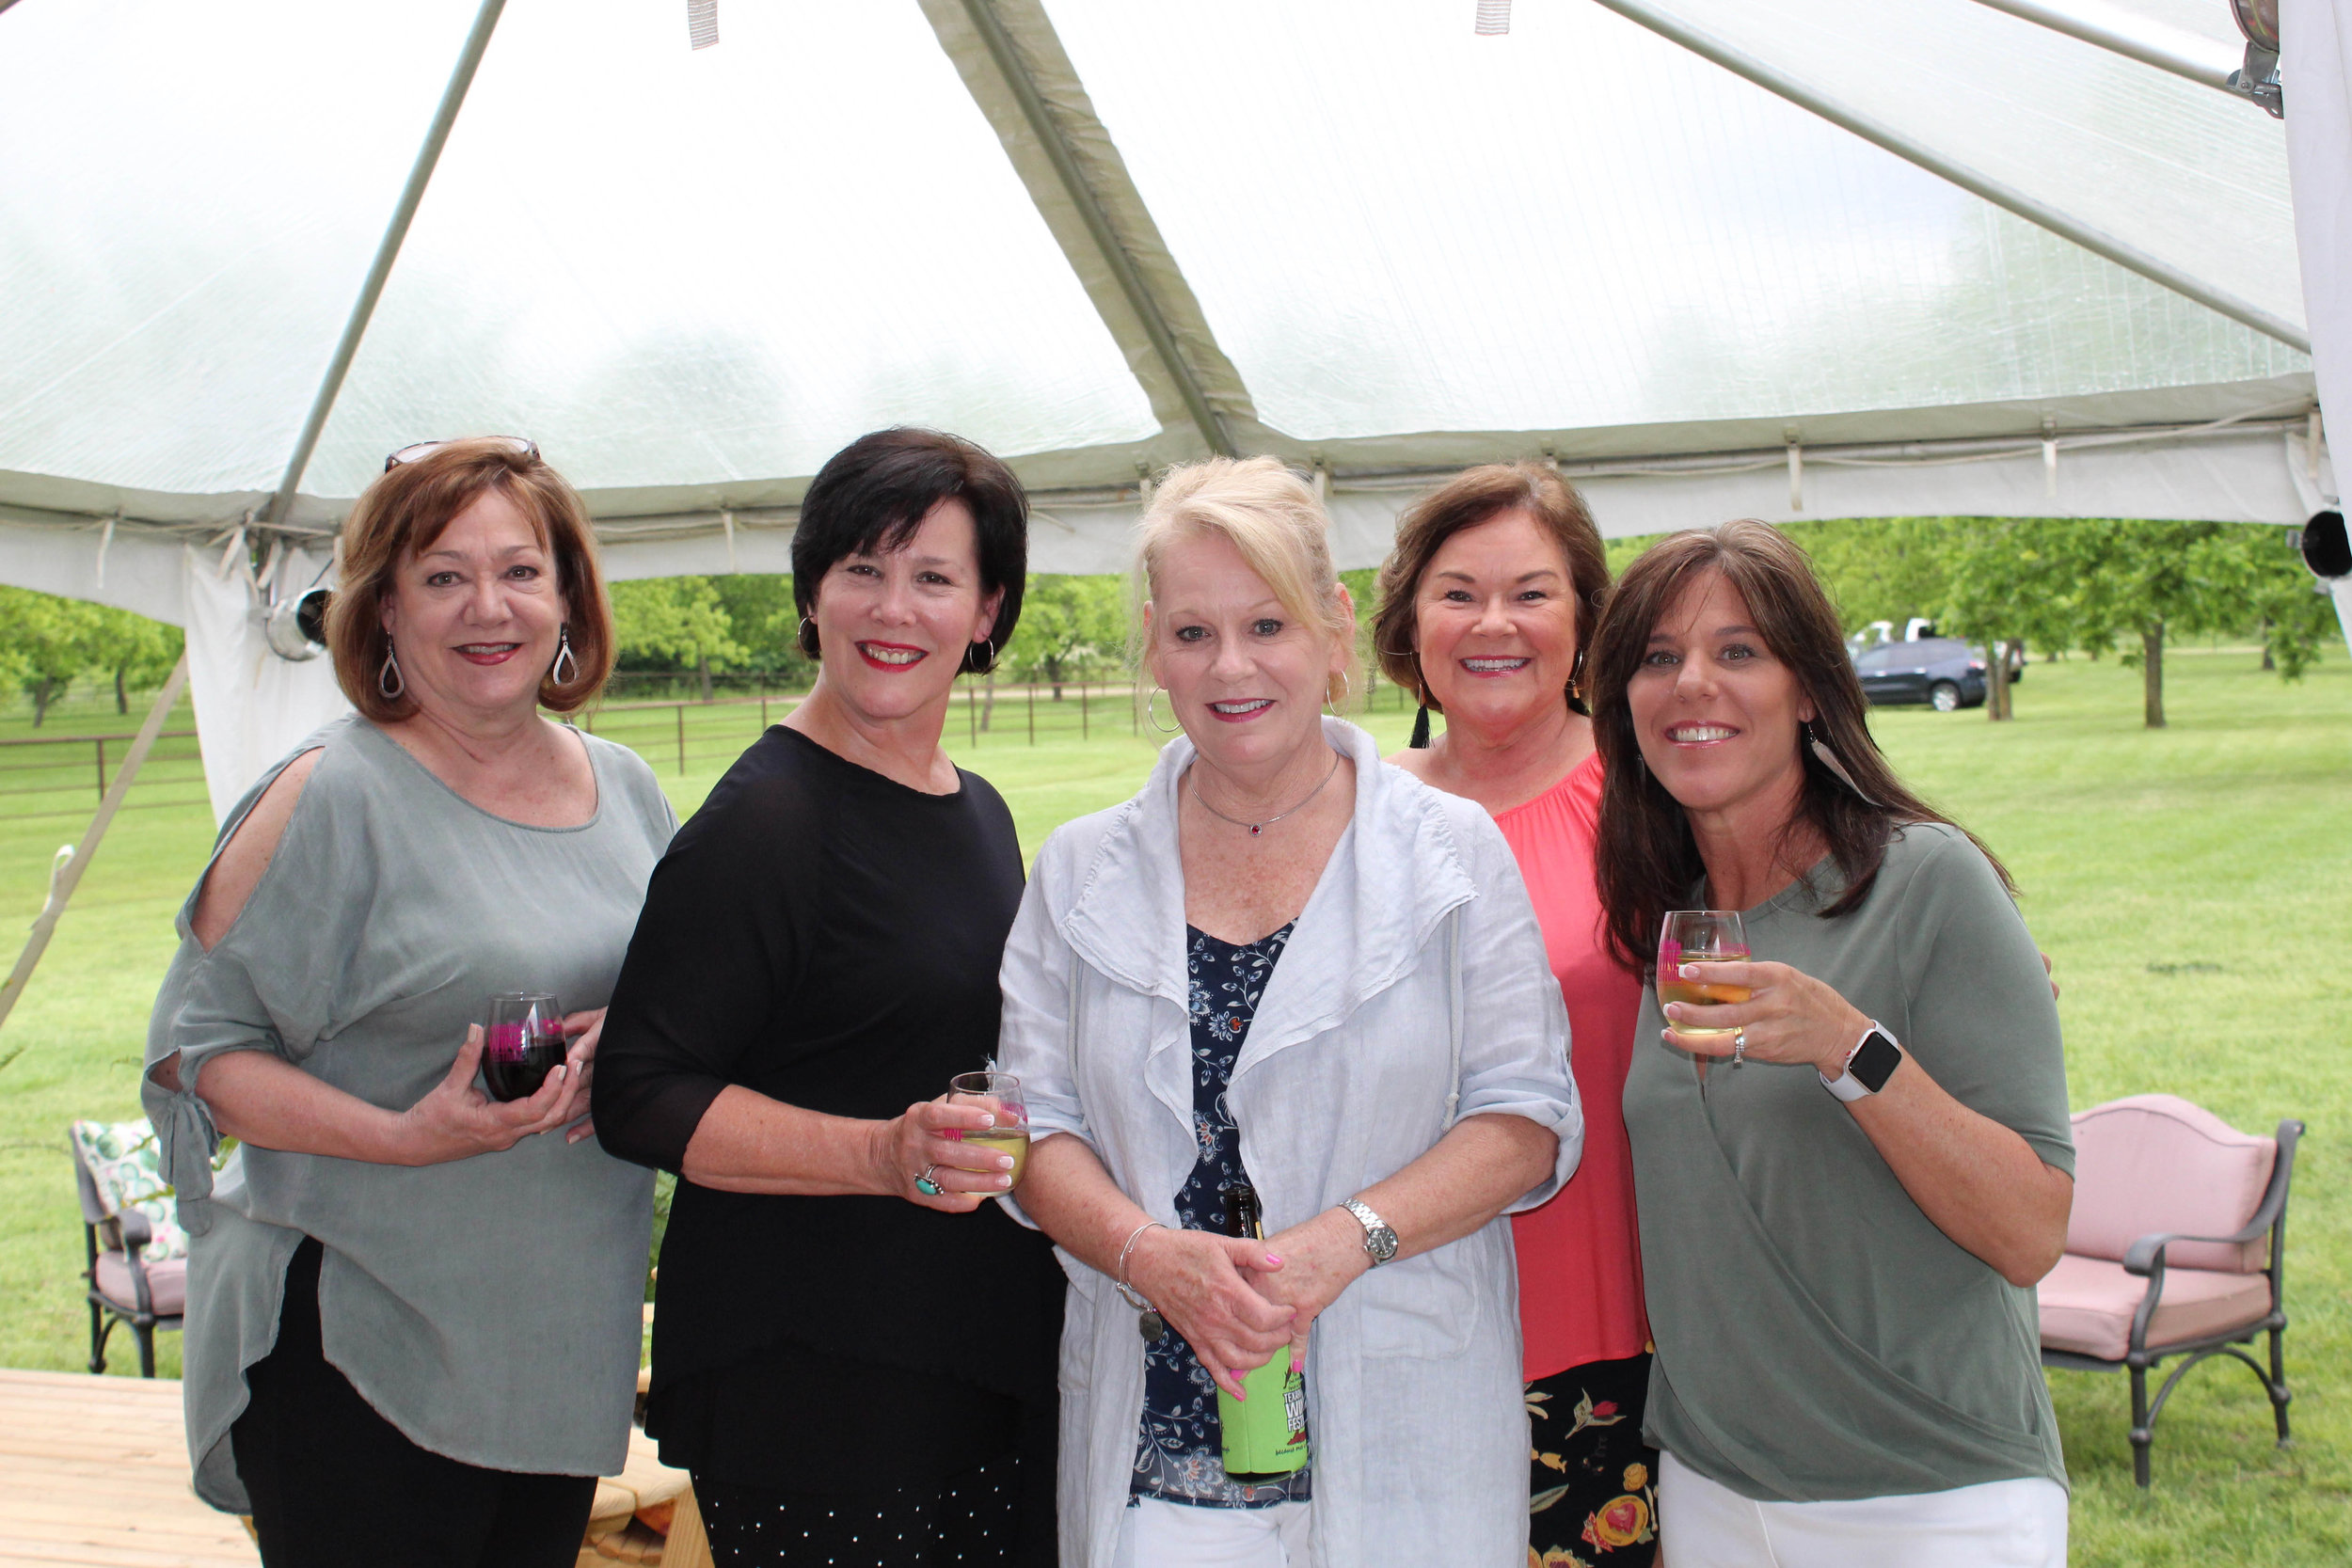 Nancy Barlow, Lynn Siegel, Terrie Arnold, Sally Stuart and Jill Launius